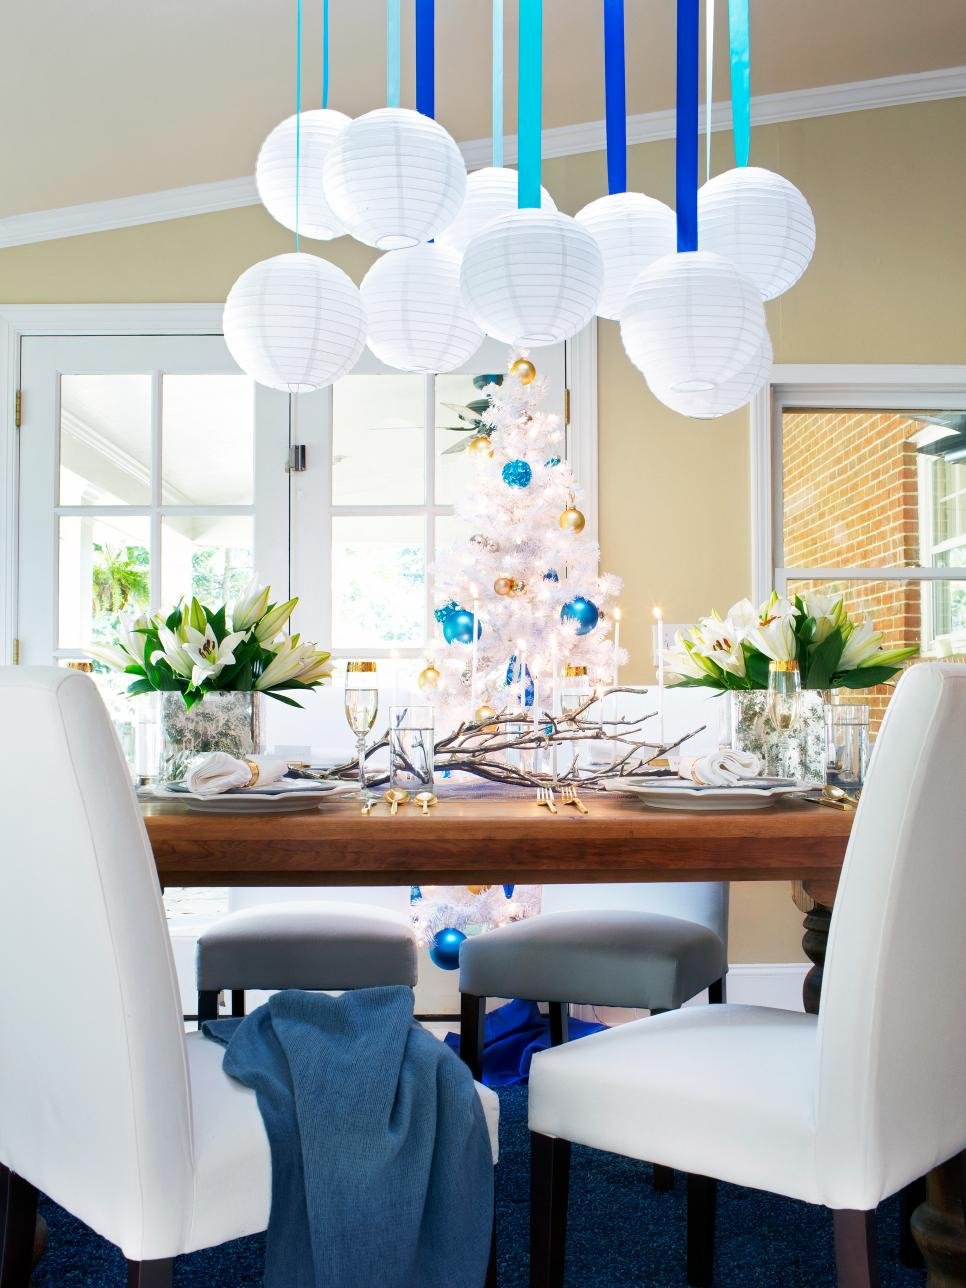 Haute Hanukkah Decorating Ideas  Hgtv. Proposal Ideas Words. Kitchen Storage Ideas For Caravans. Christmas Ideas Nursery. Decorating Ideas For Main Bathroom. Kitchen Wall Tiles Ideas Pictures. Bathroom Vanity Ideas For Small Spaces. Lunch Ideas Kindergarten. Pumpkin Carving Ideas Thanksgiving